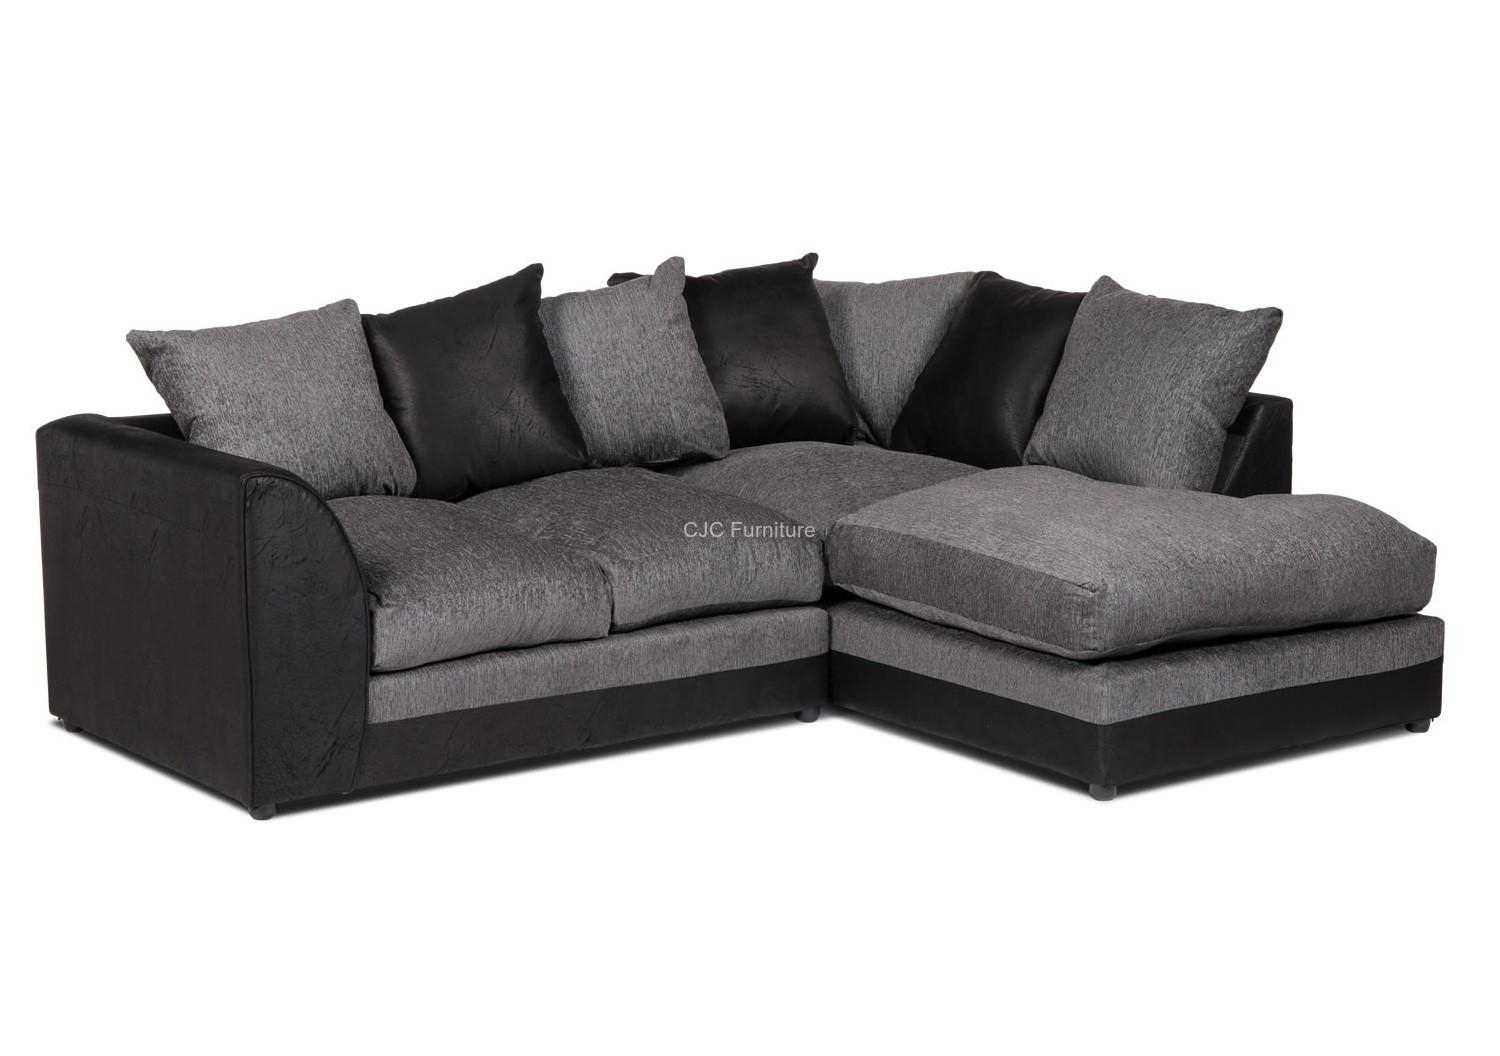 Second hand sofas birmingham uk for Second hand sofas